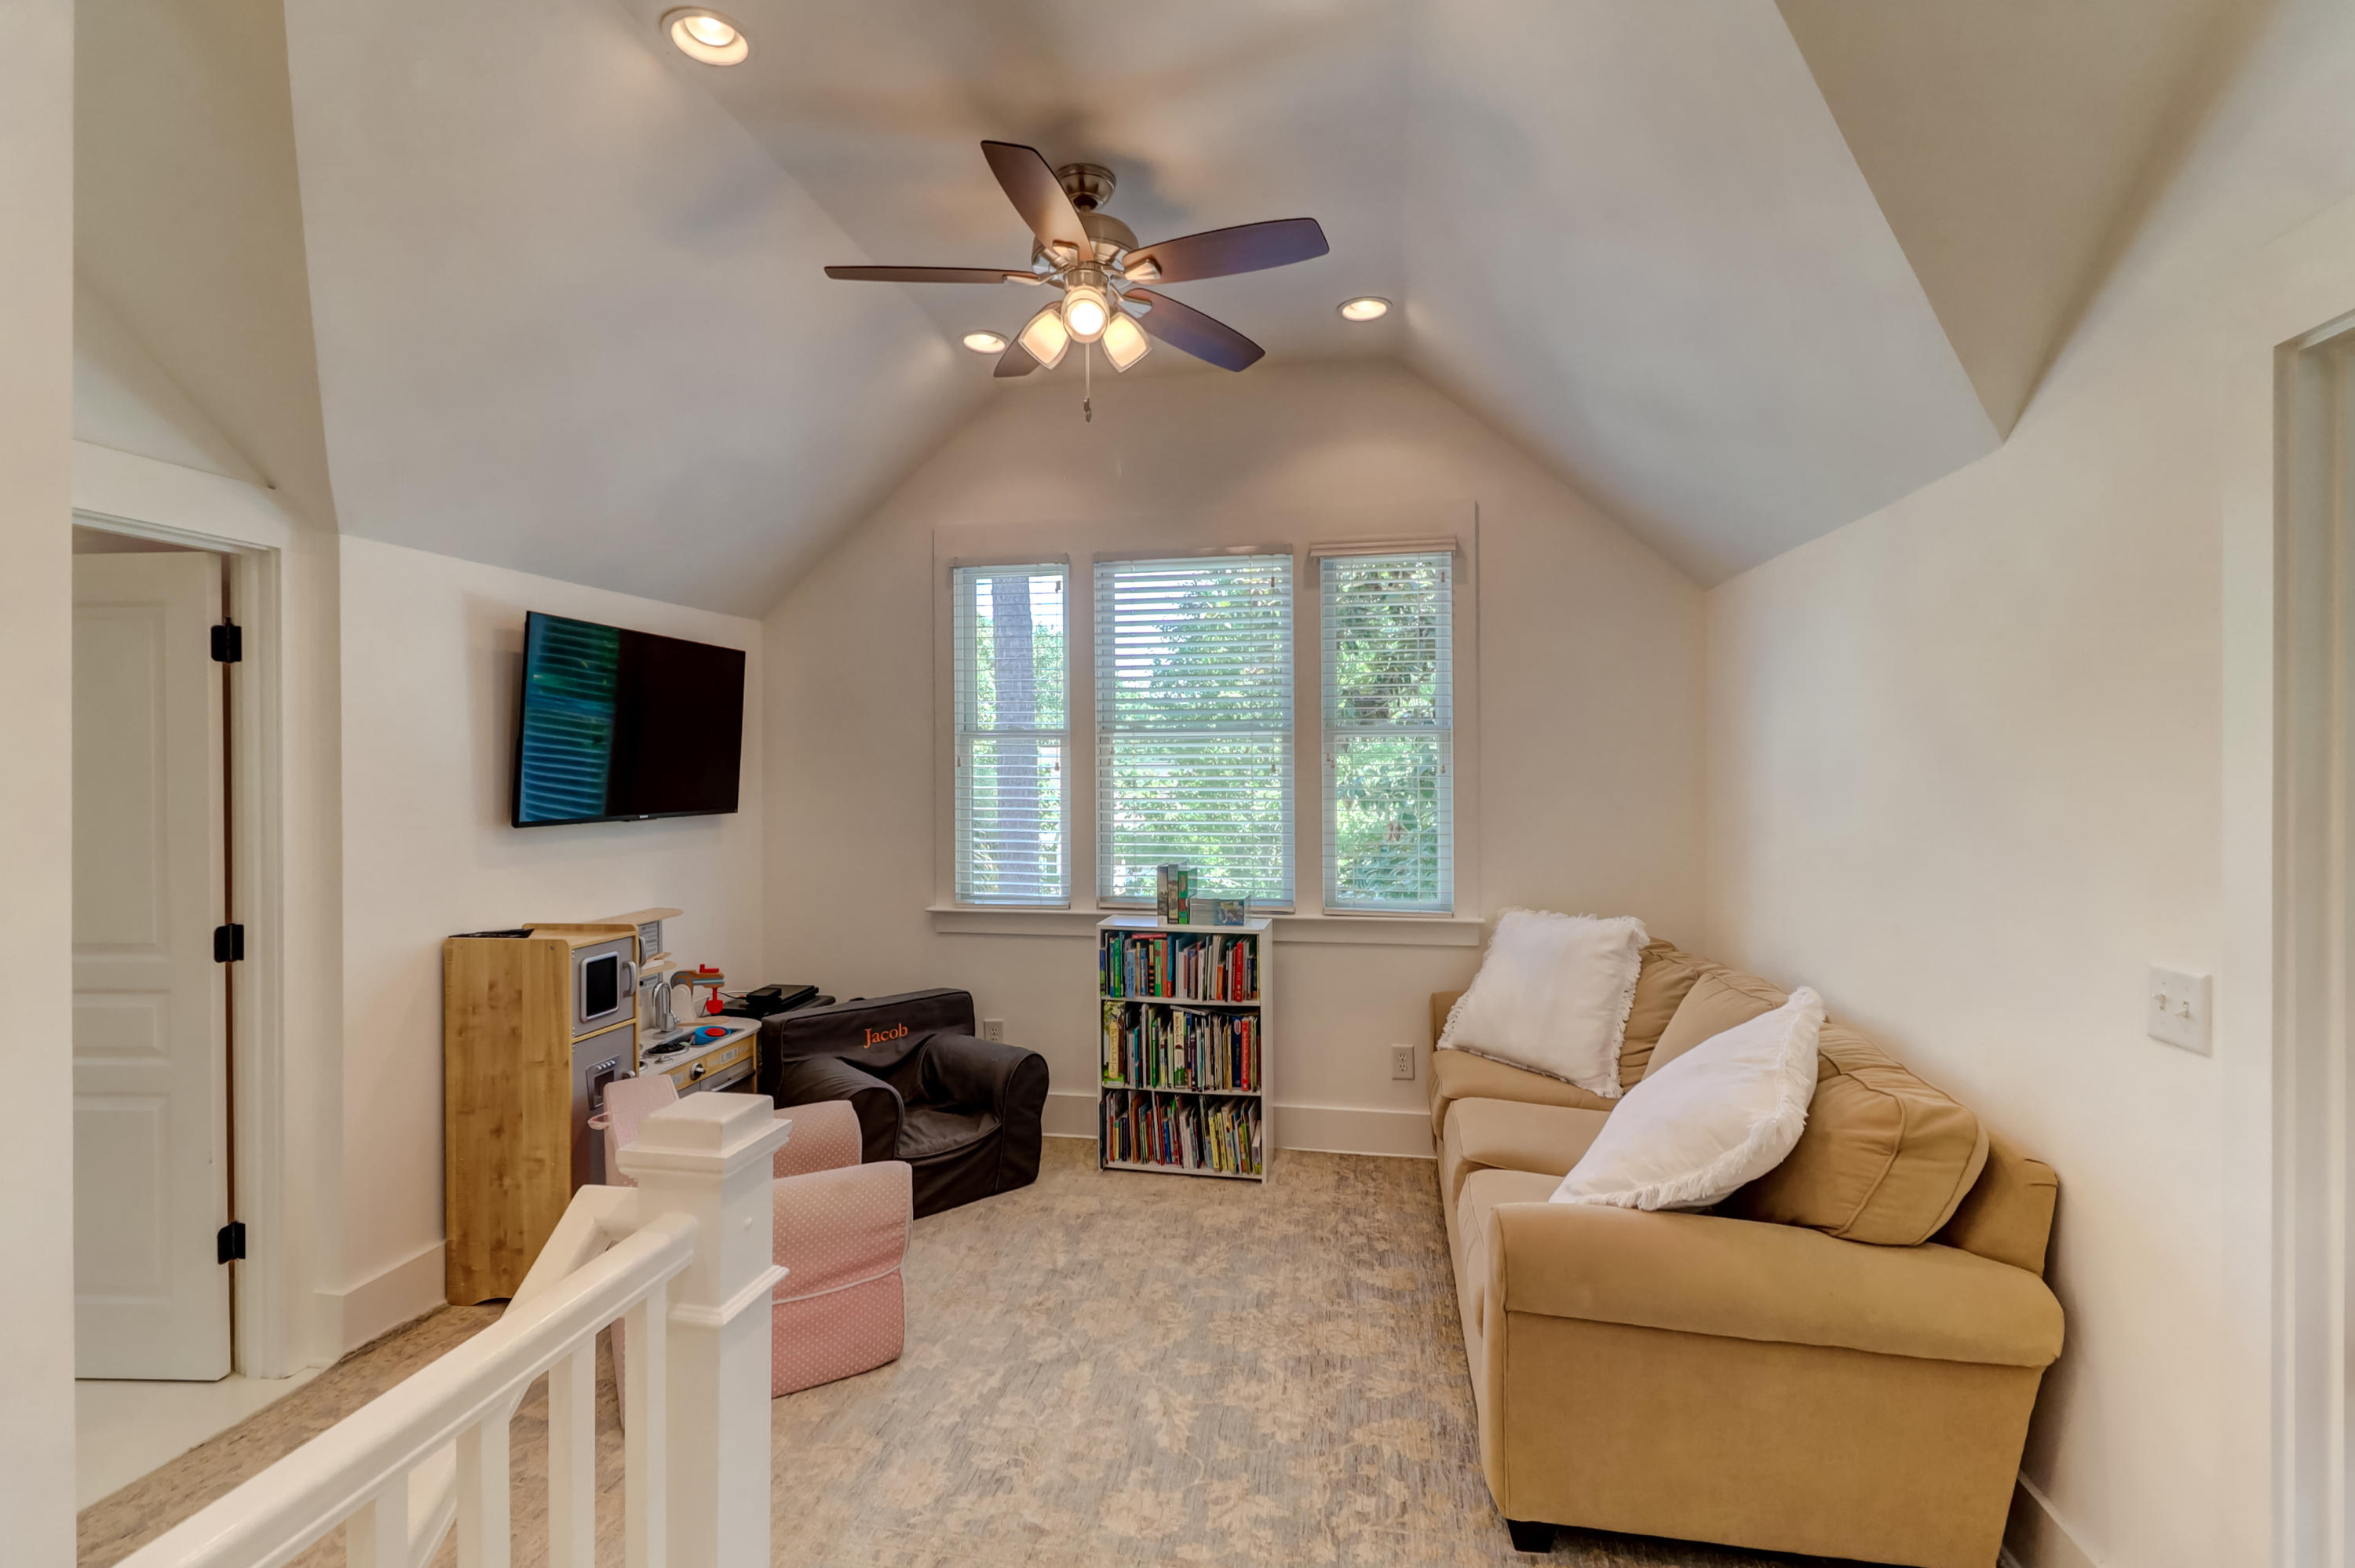 The Villages In St Johns Woods Homes For Sale - 5056 Coral Reef Dr, Johns Island, SC - 43